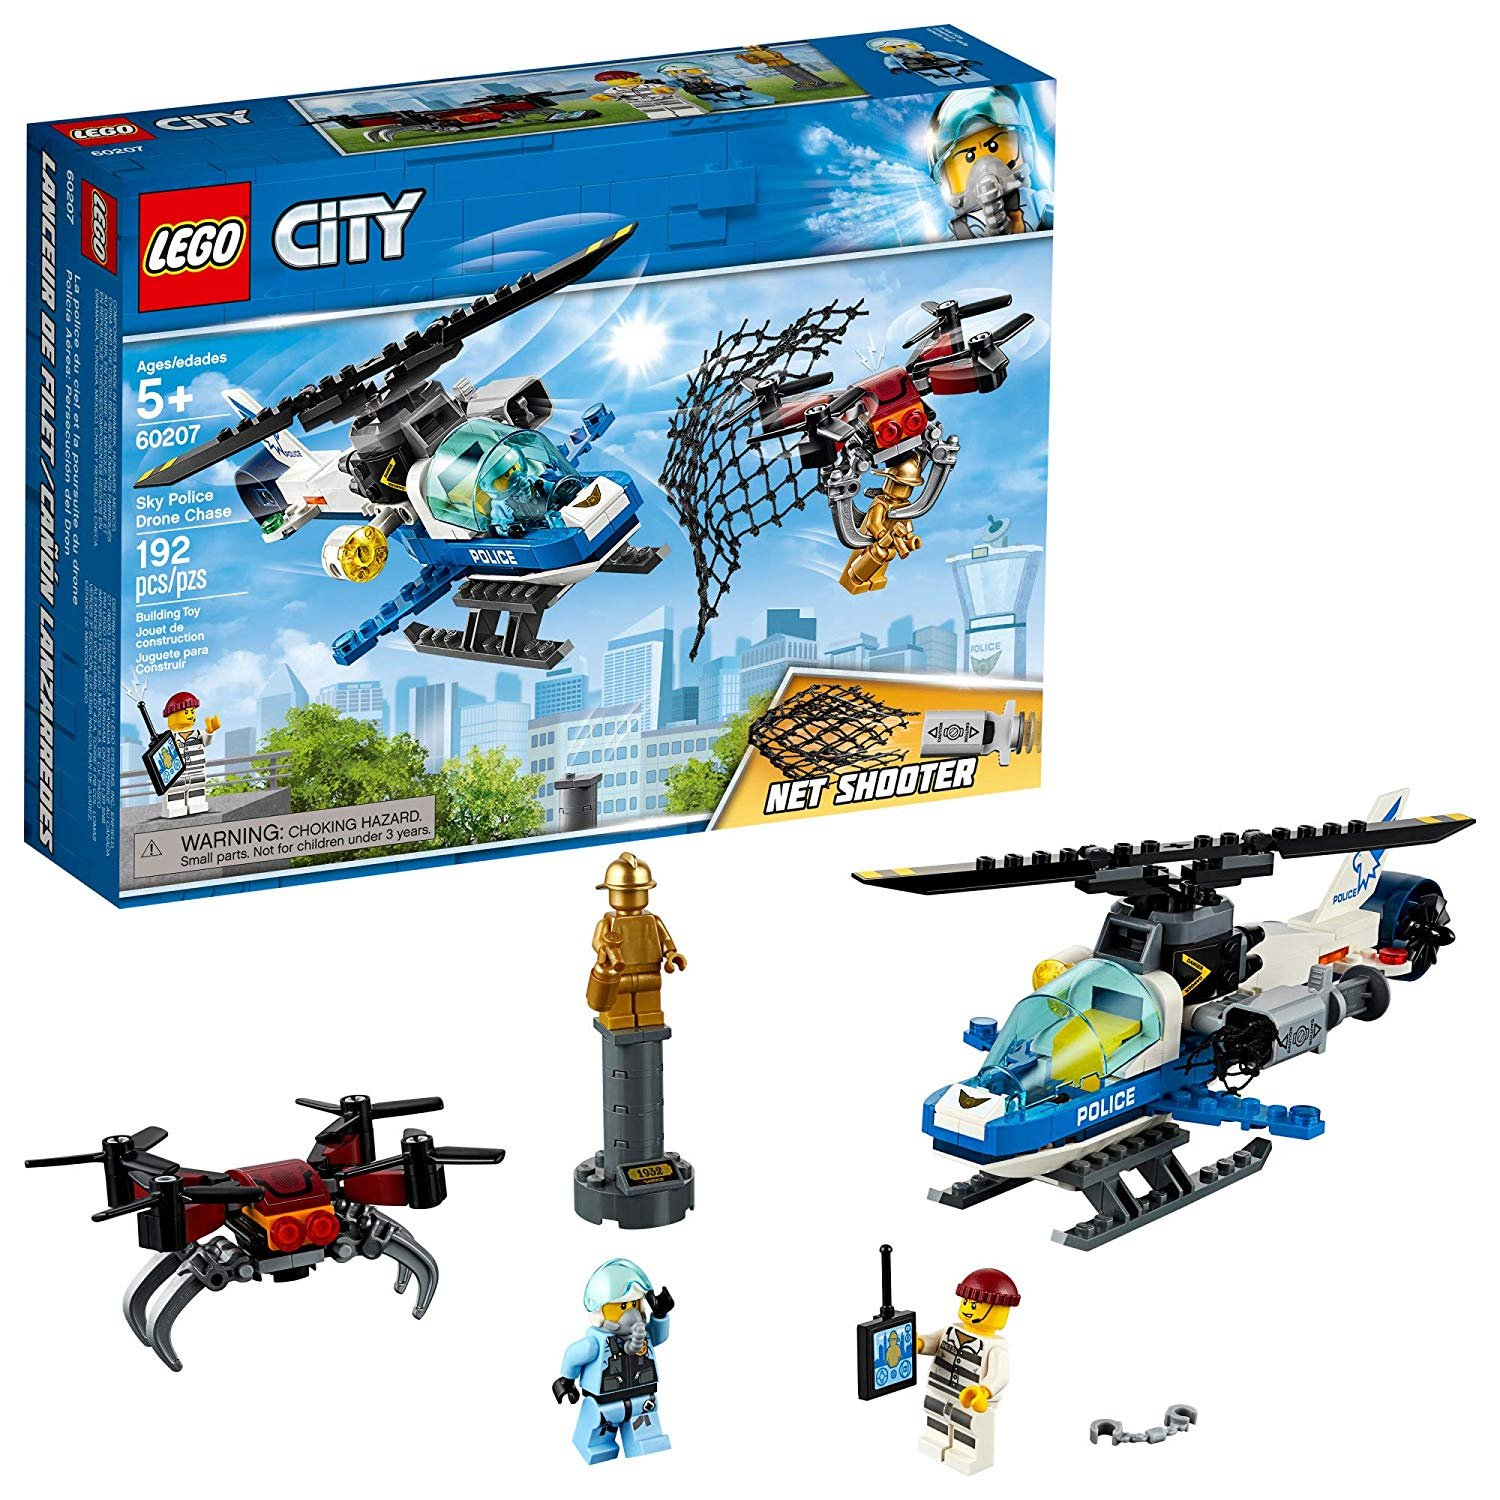 Lego City (60207) Sky Police Drone Chase 192pc Set